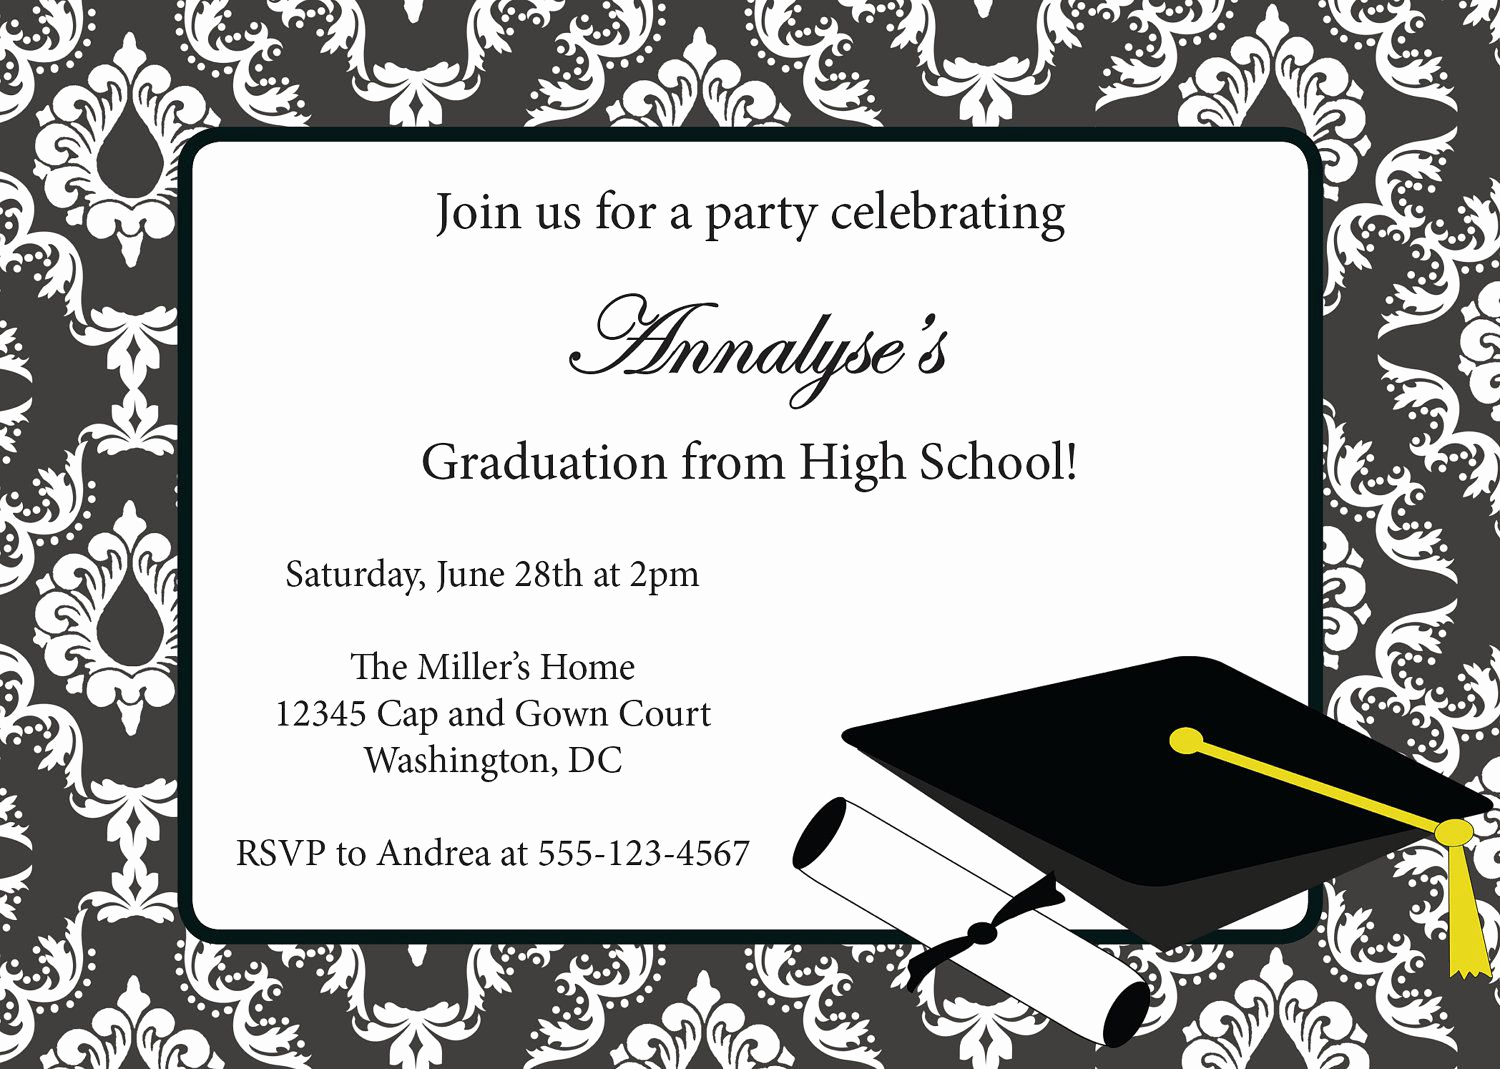 Graduation Invitation Cards Samples Inspirational Graduation Invitations Invitation Card for Graduation